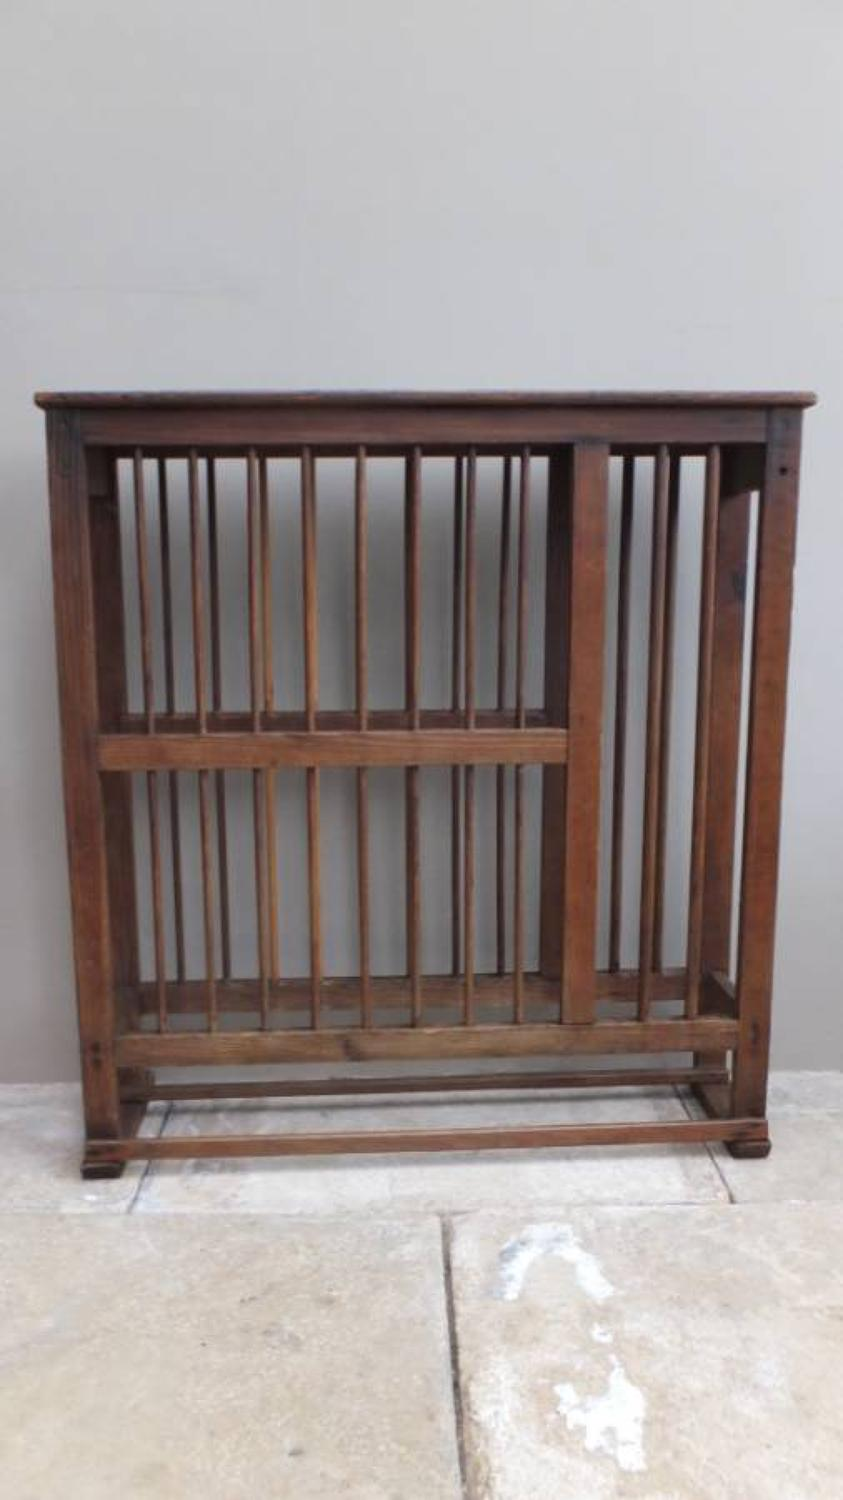 Late Victorian Pine Plate Rack - picture 1 ... & Late Victorian Pine Plate Rack in Furniture u0026 Miscellaneous